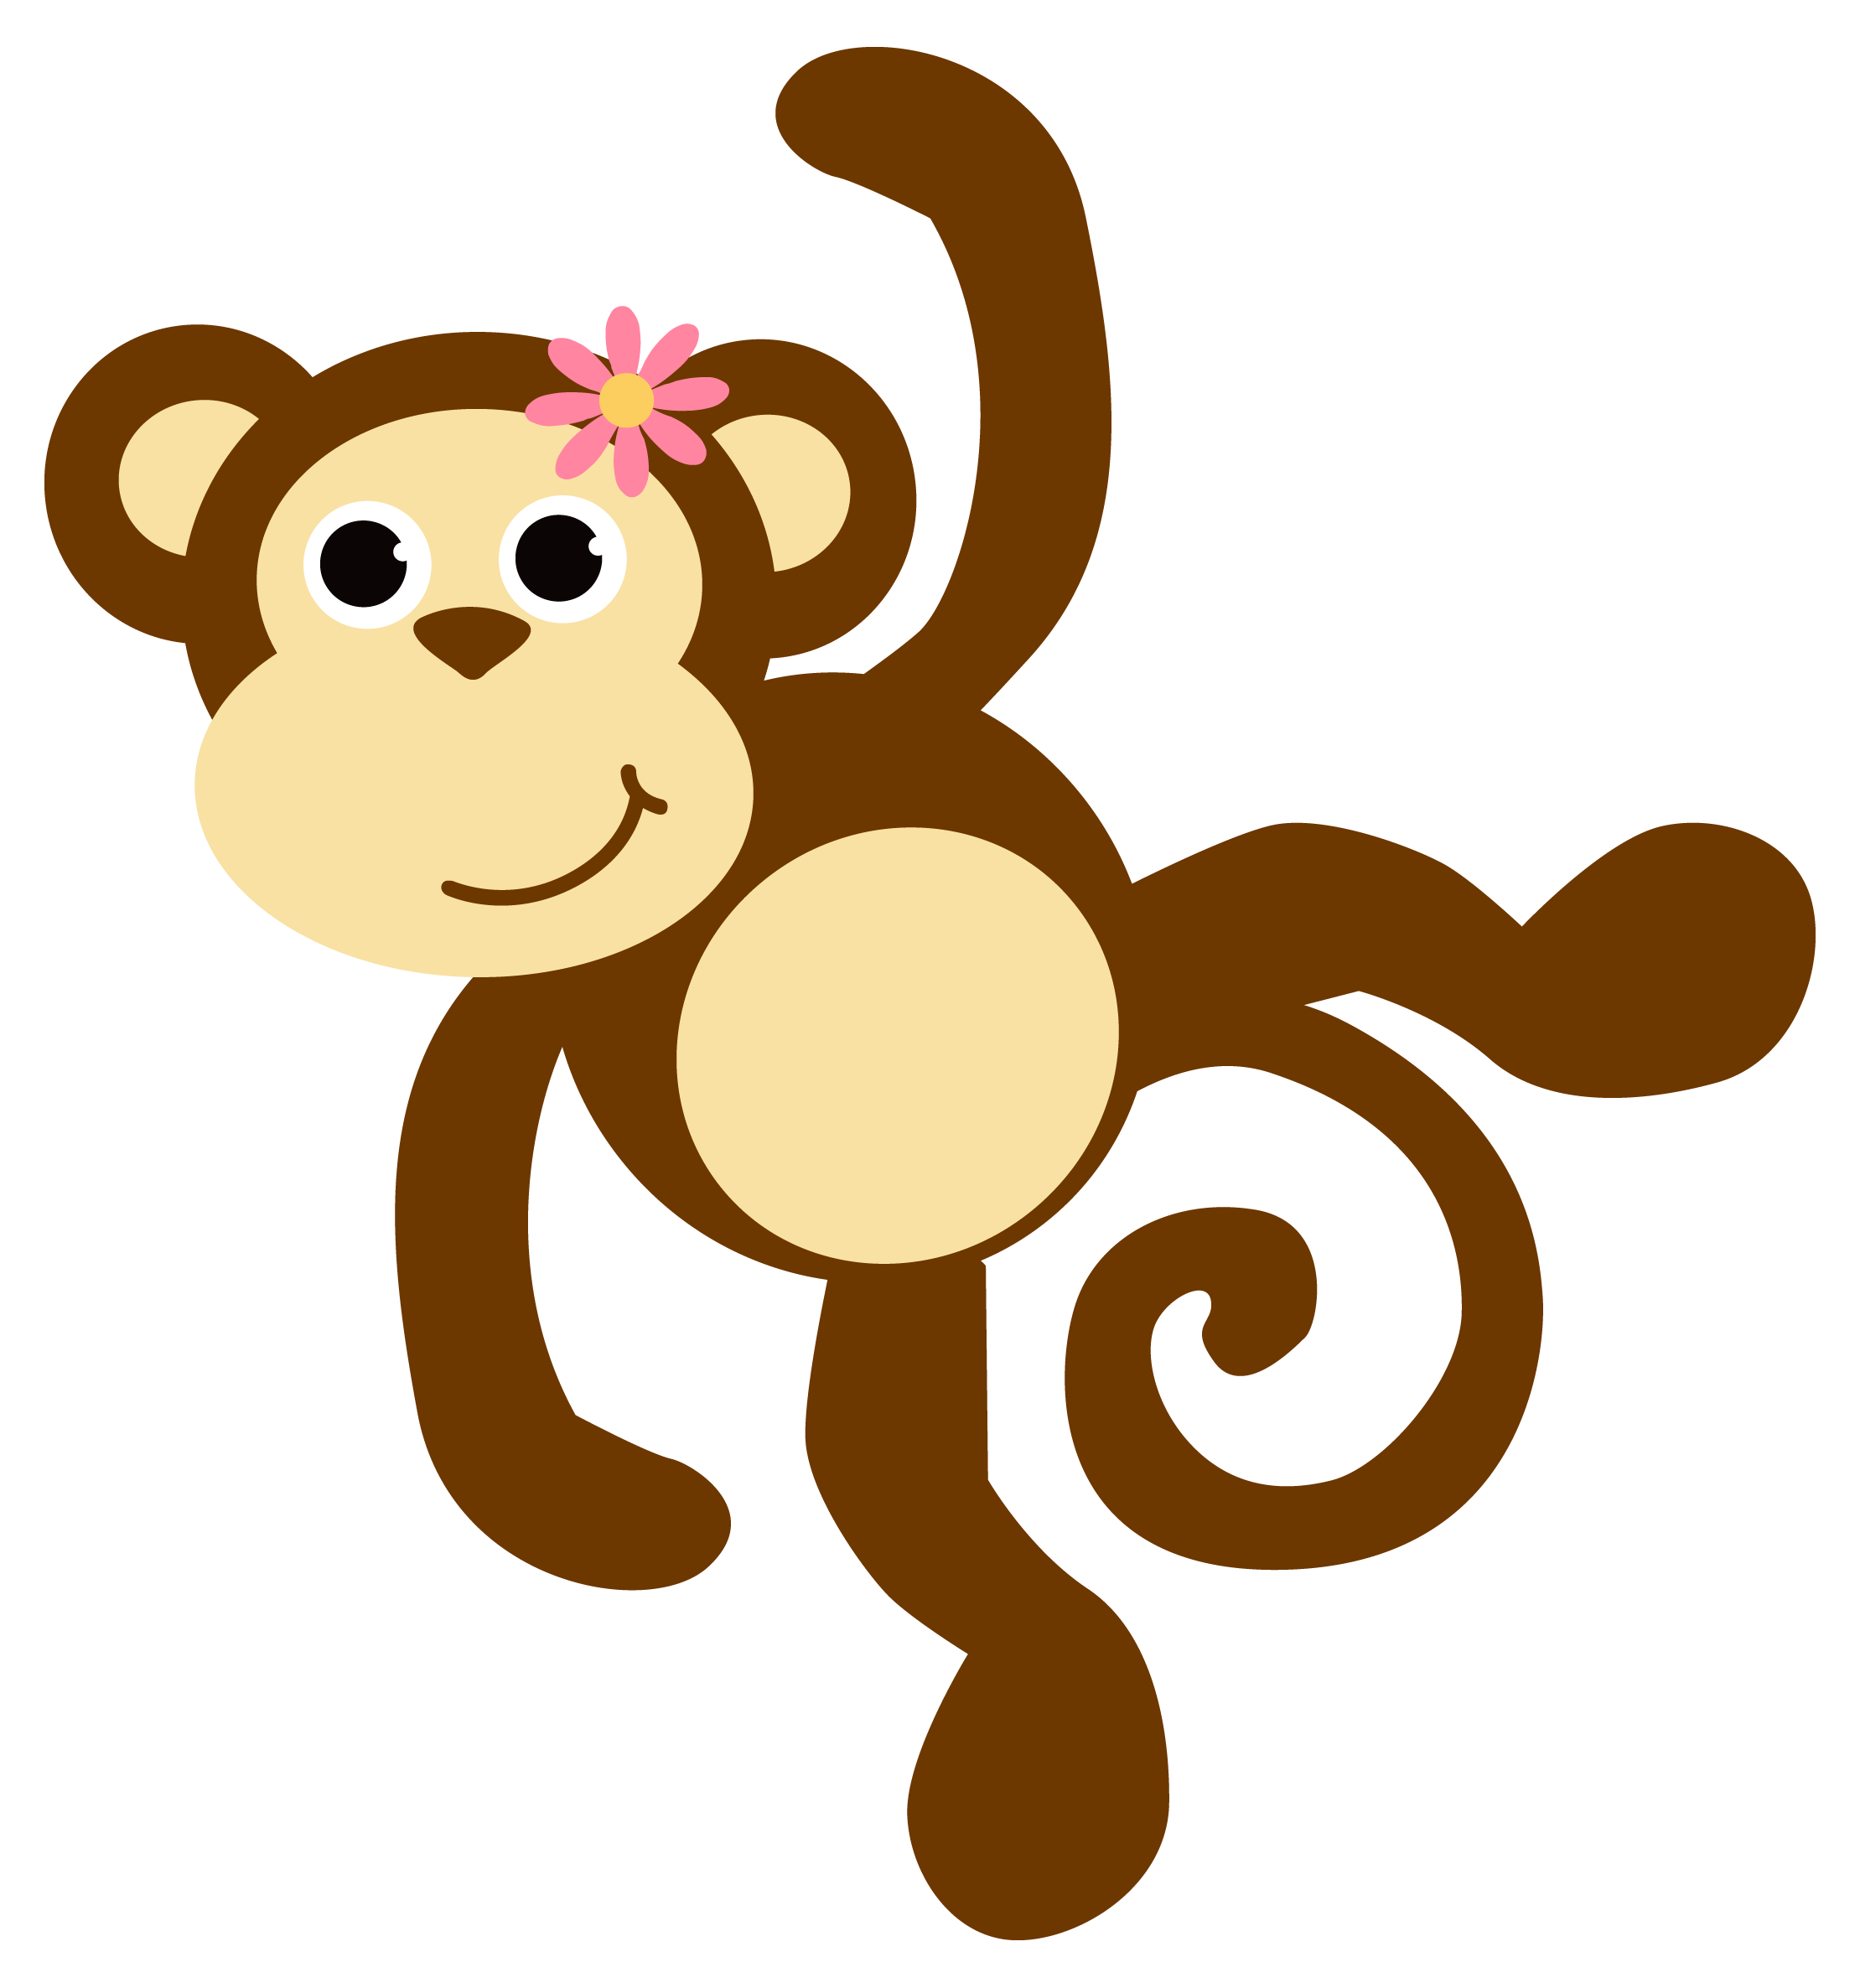 Monkey hanging from tree clipart clip art black and white stock Funky Monkey Clipart - 2018 Clipart Gallery clip art black and white stock